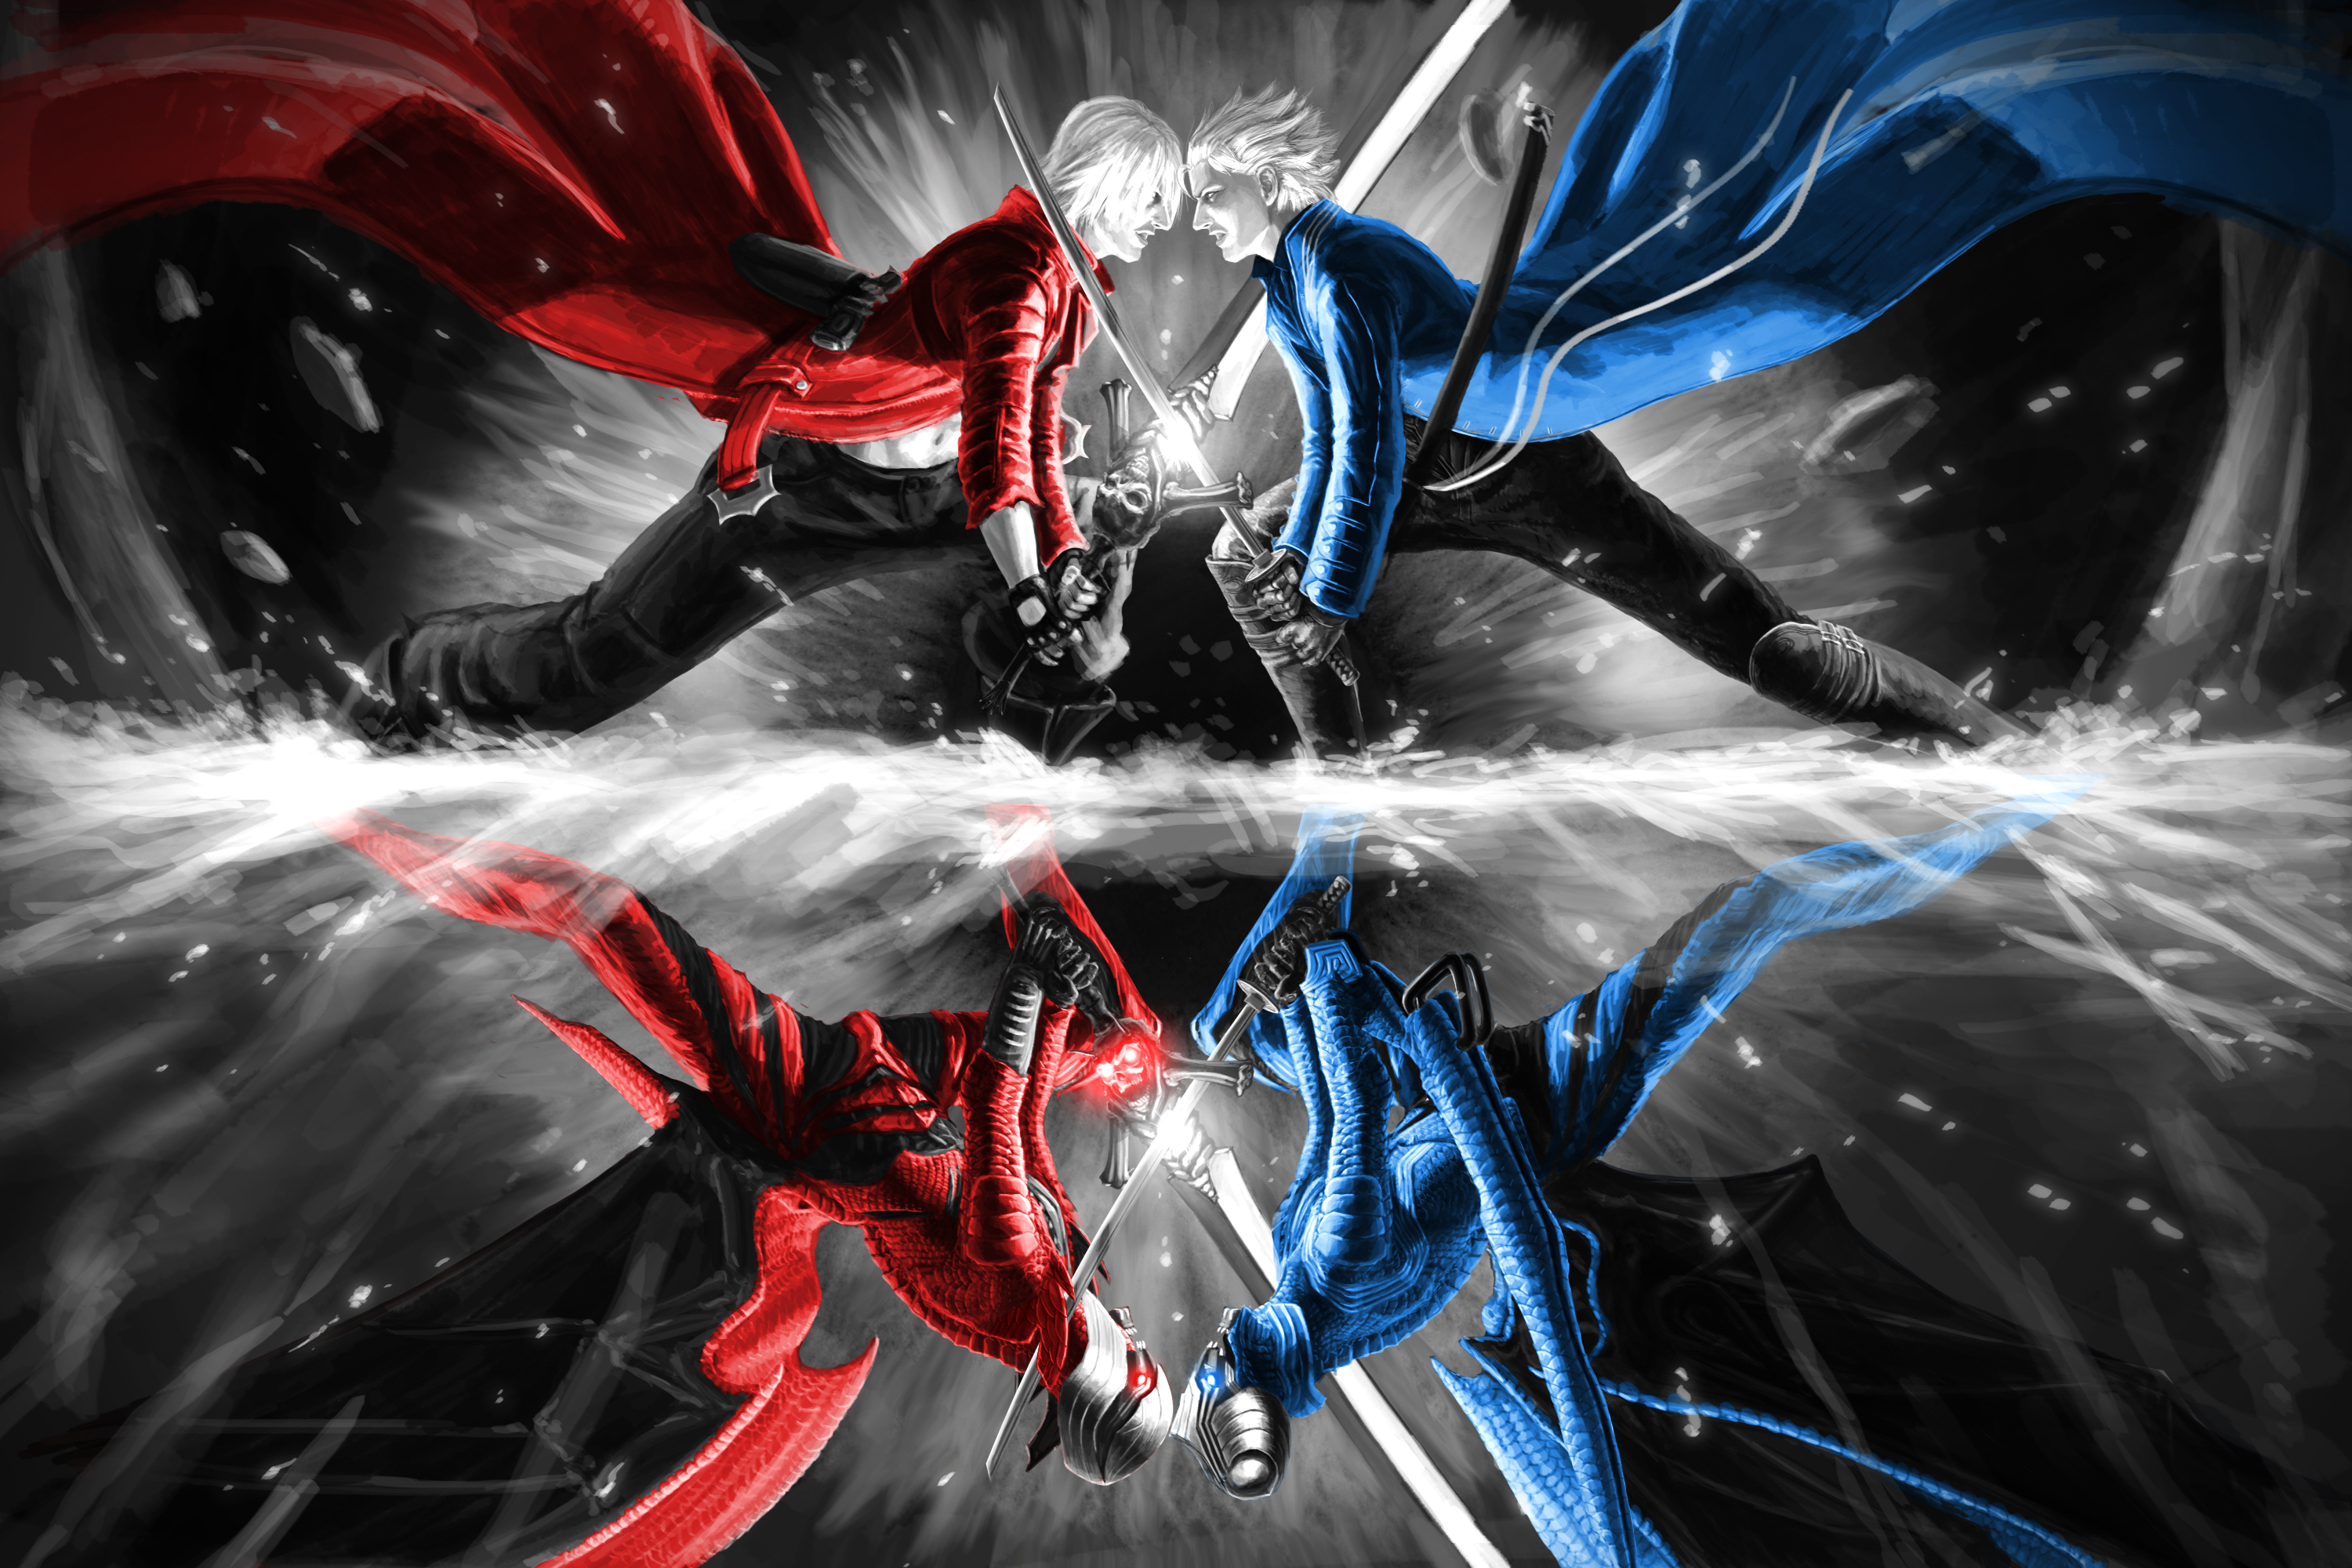 Vergil Yamato Sword Hd Wallpaper: Devil May Cry Wallpapers HD